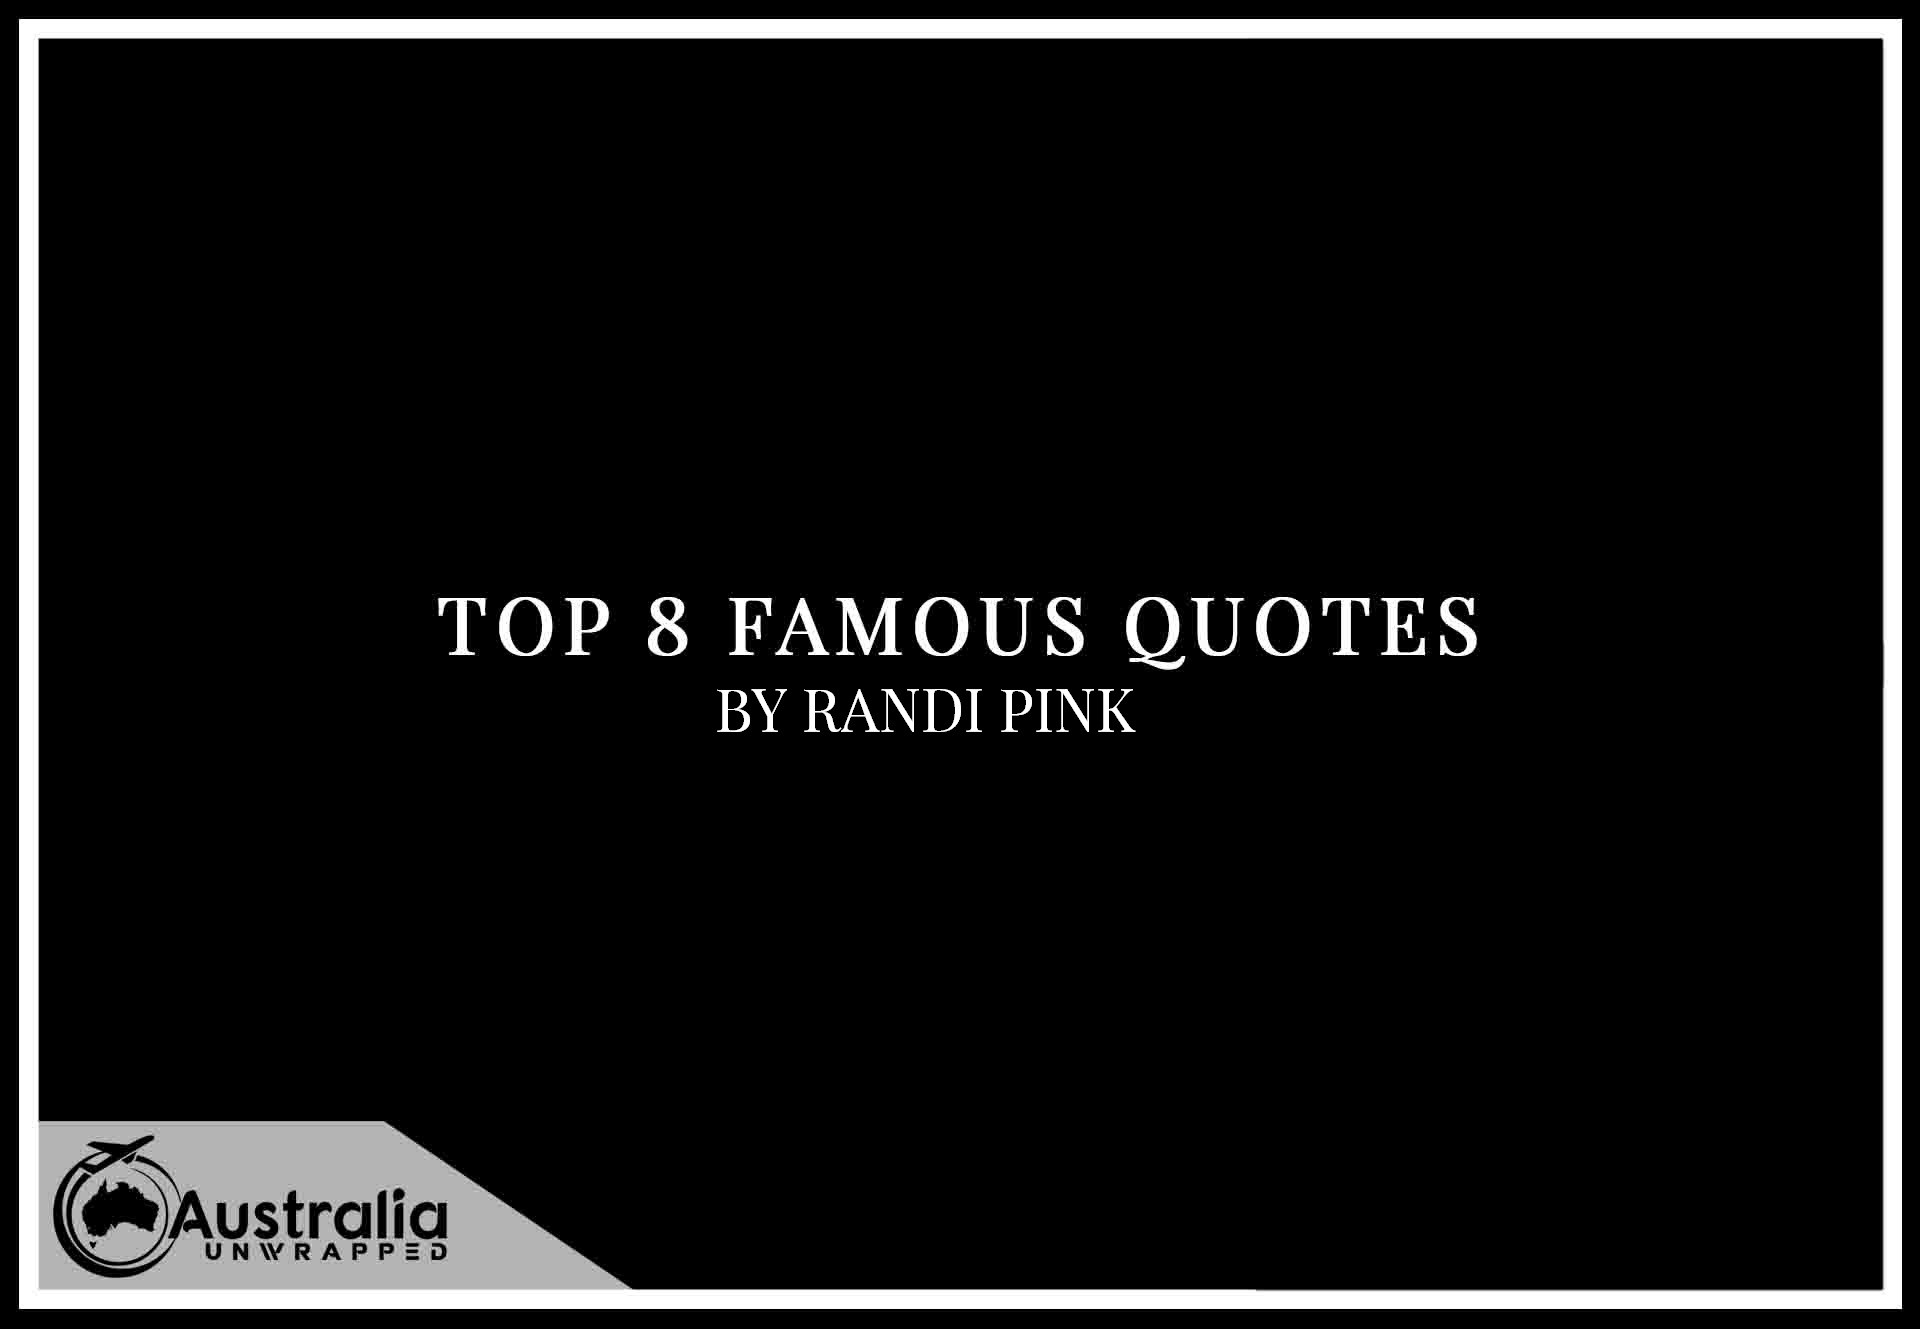 Randi Pink's Top 8 Popular and Famous Quotes